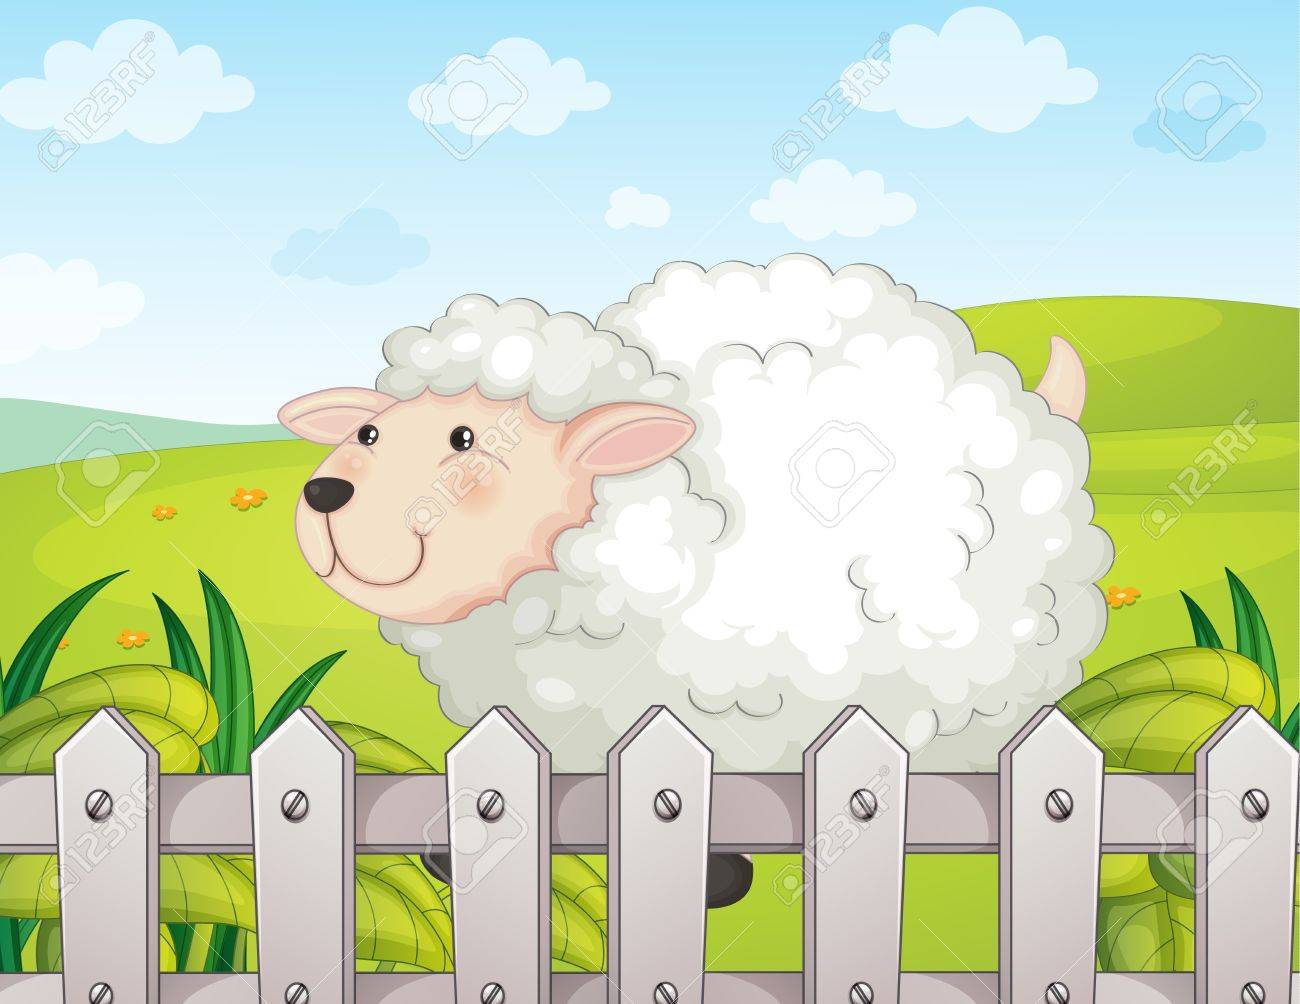 Illustration of a smiling sheep Stock Vector - 17442953